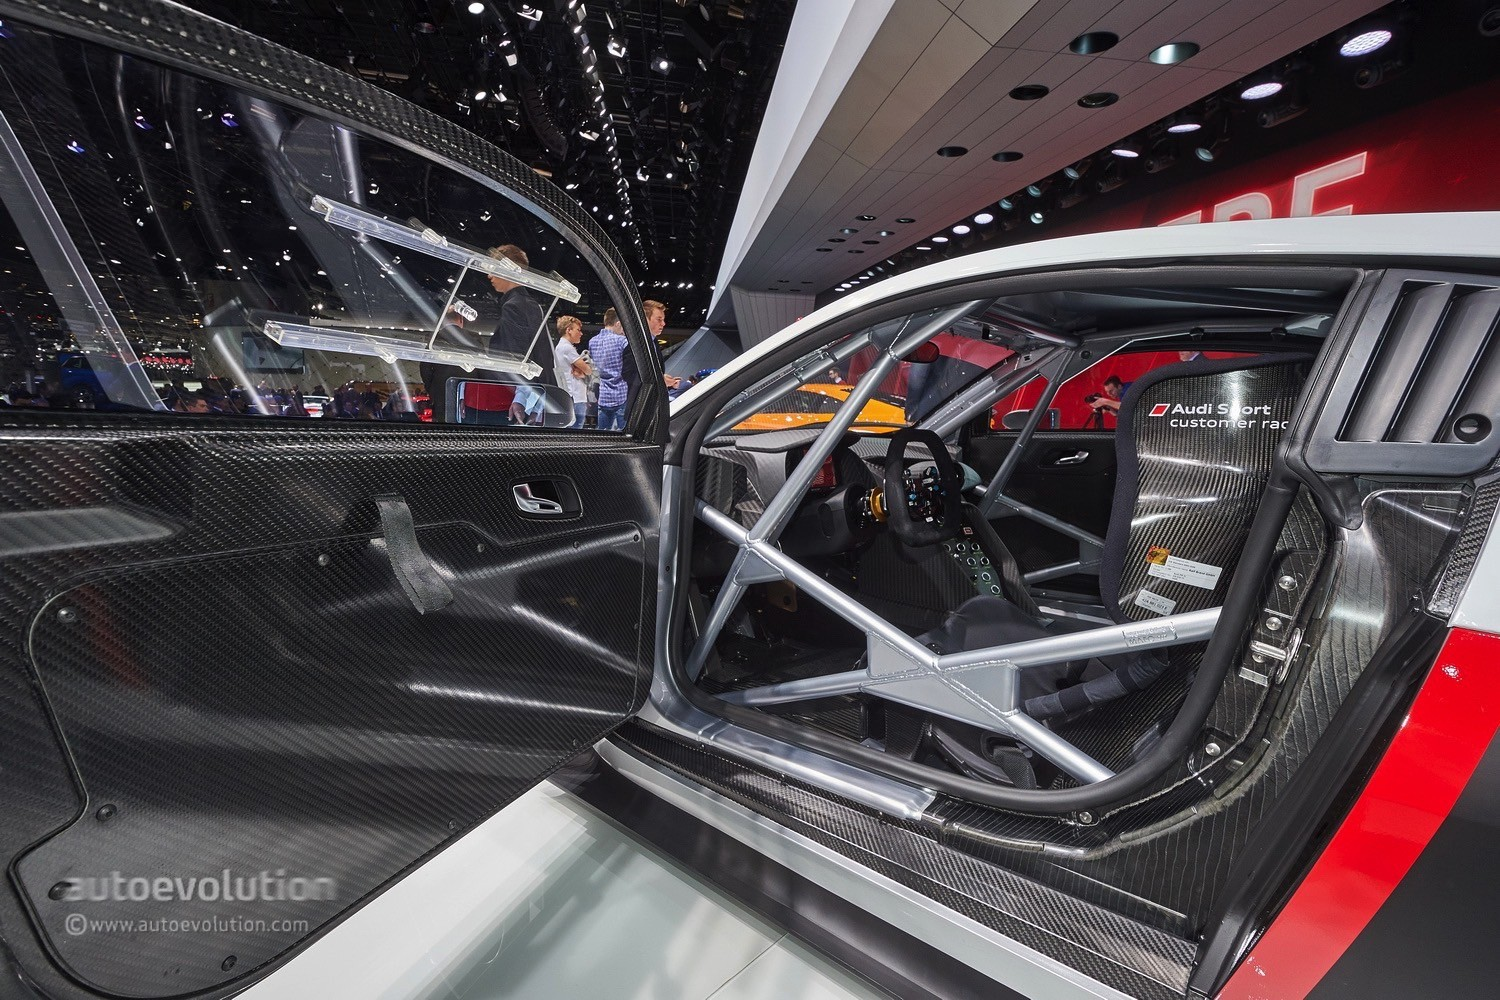 Audi R Lms Races Into Gt With Stiffer Chassis And Extra Safety Features Live Photos